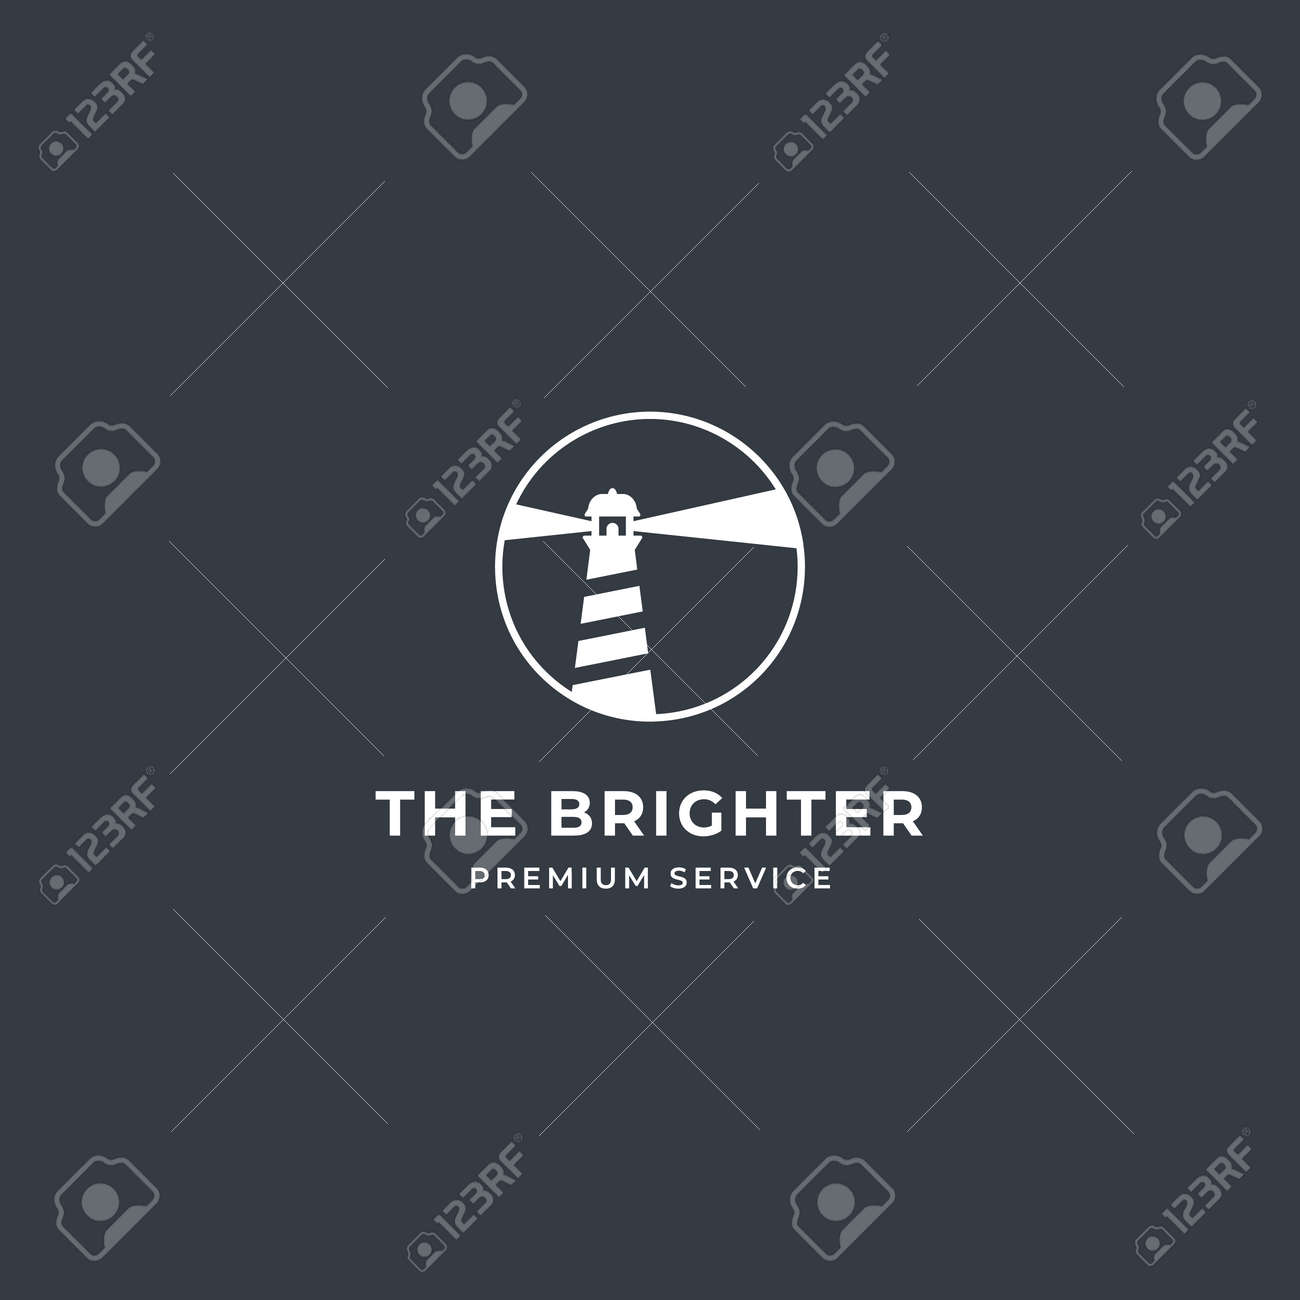 Lighthouse Tower Island logo with searching light and rock coral. premium vector - 162381769